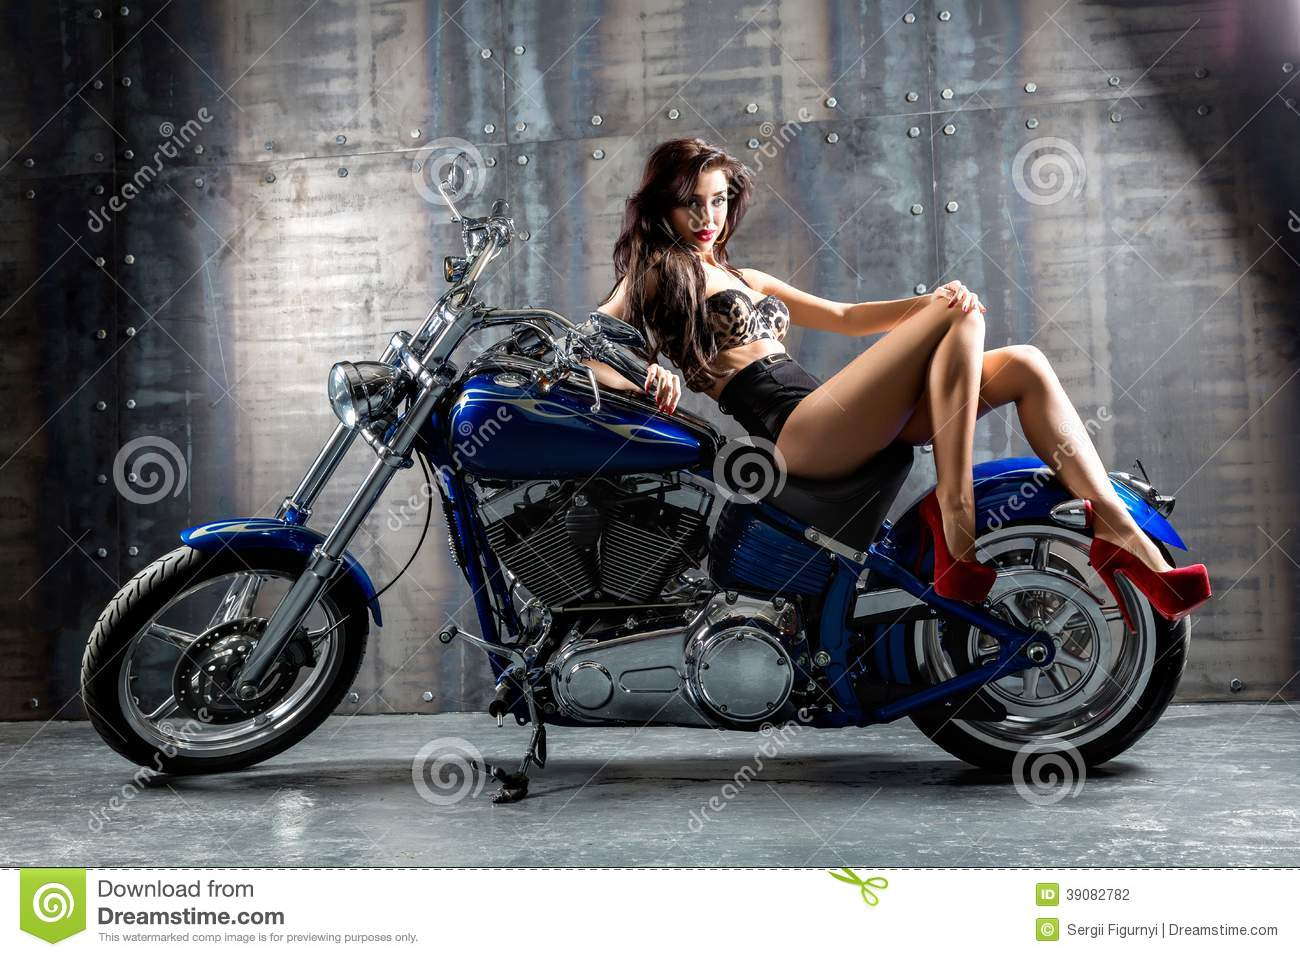 Young woman sitting on motorcycle.